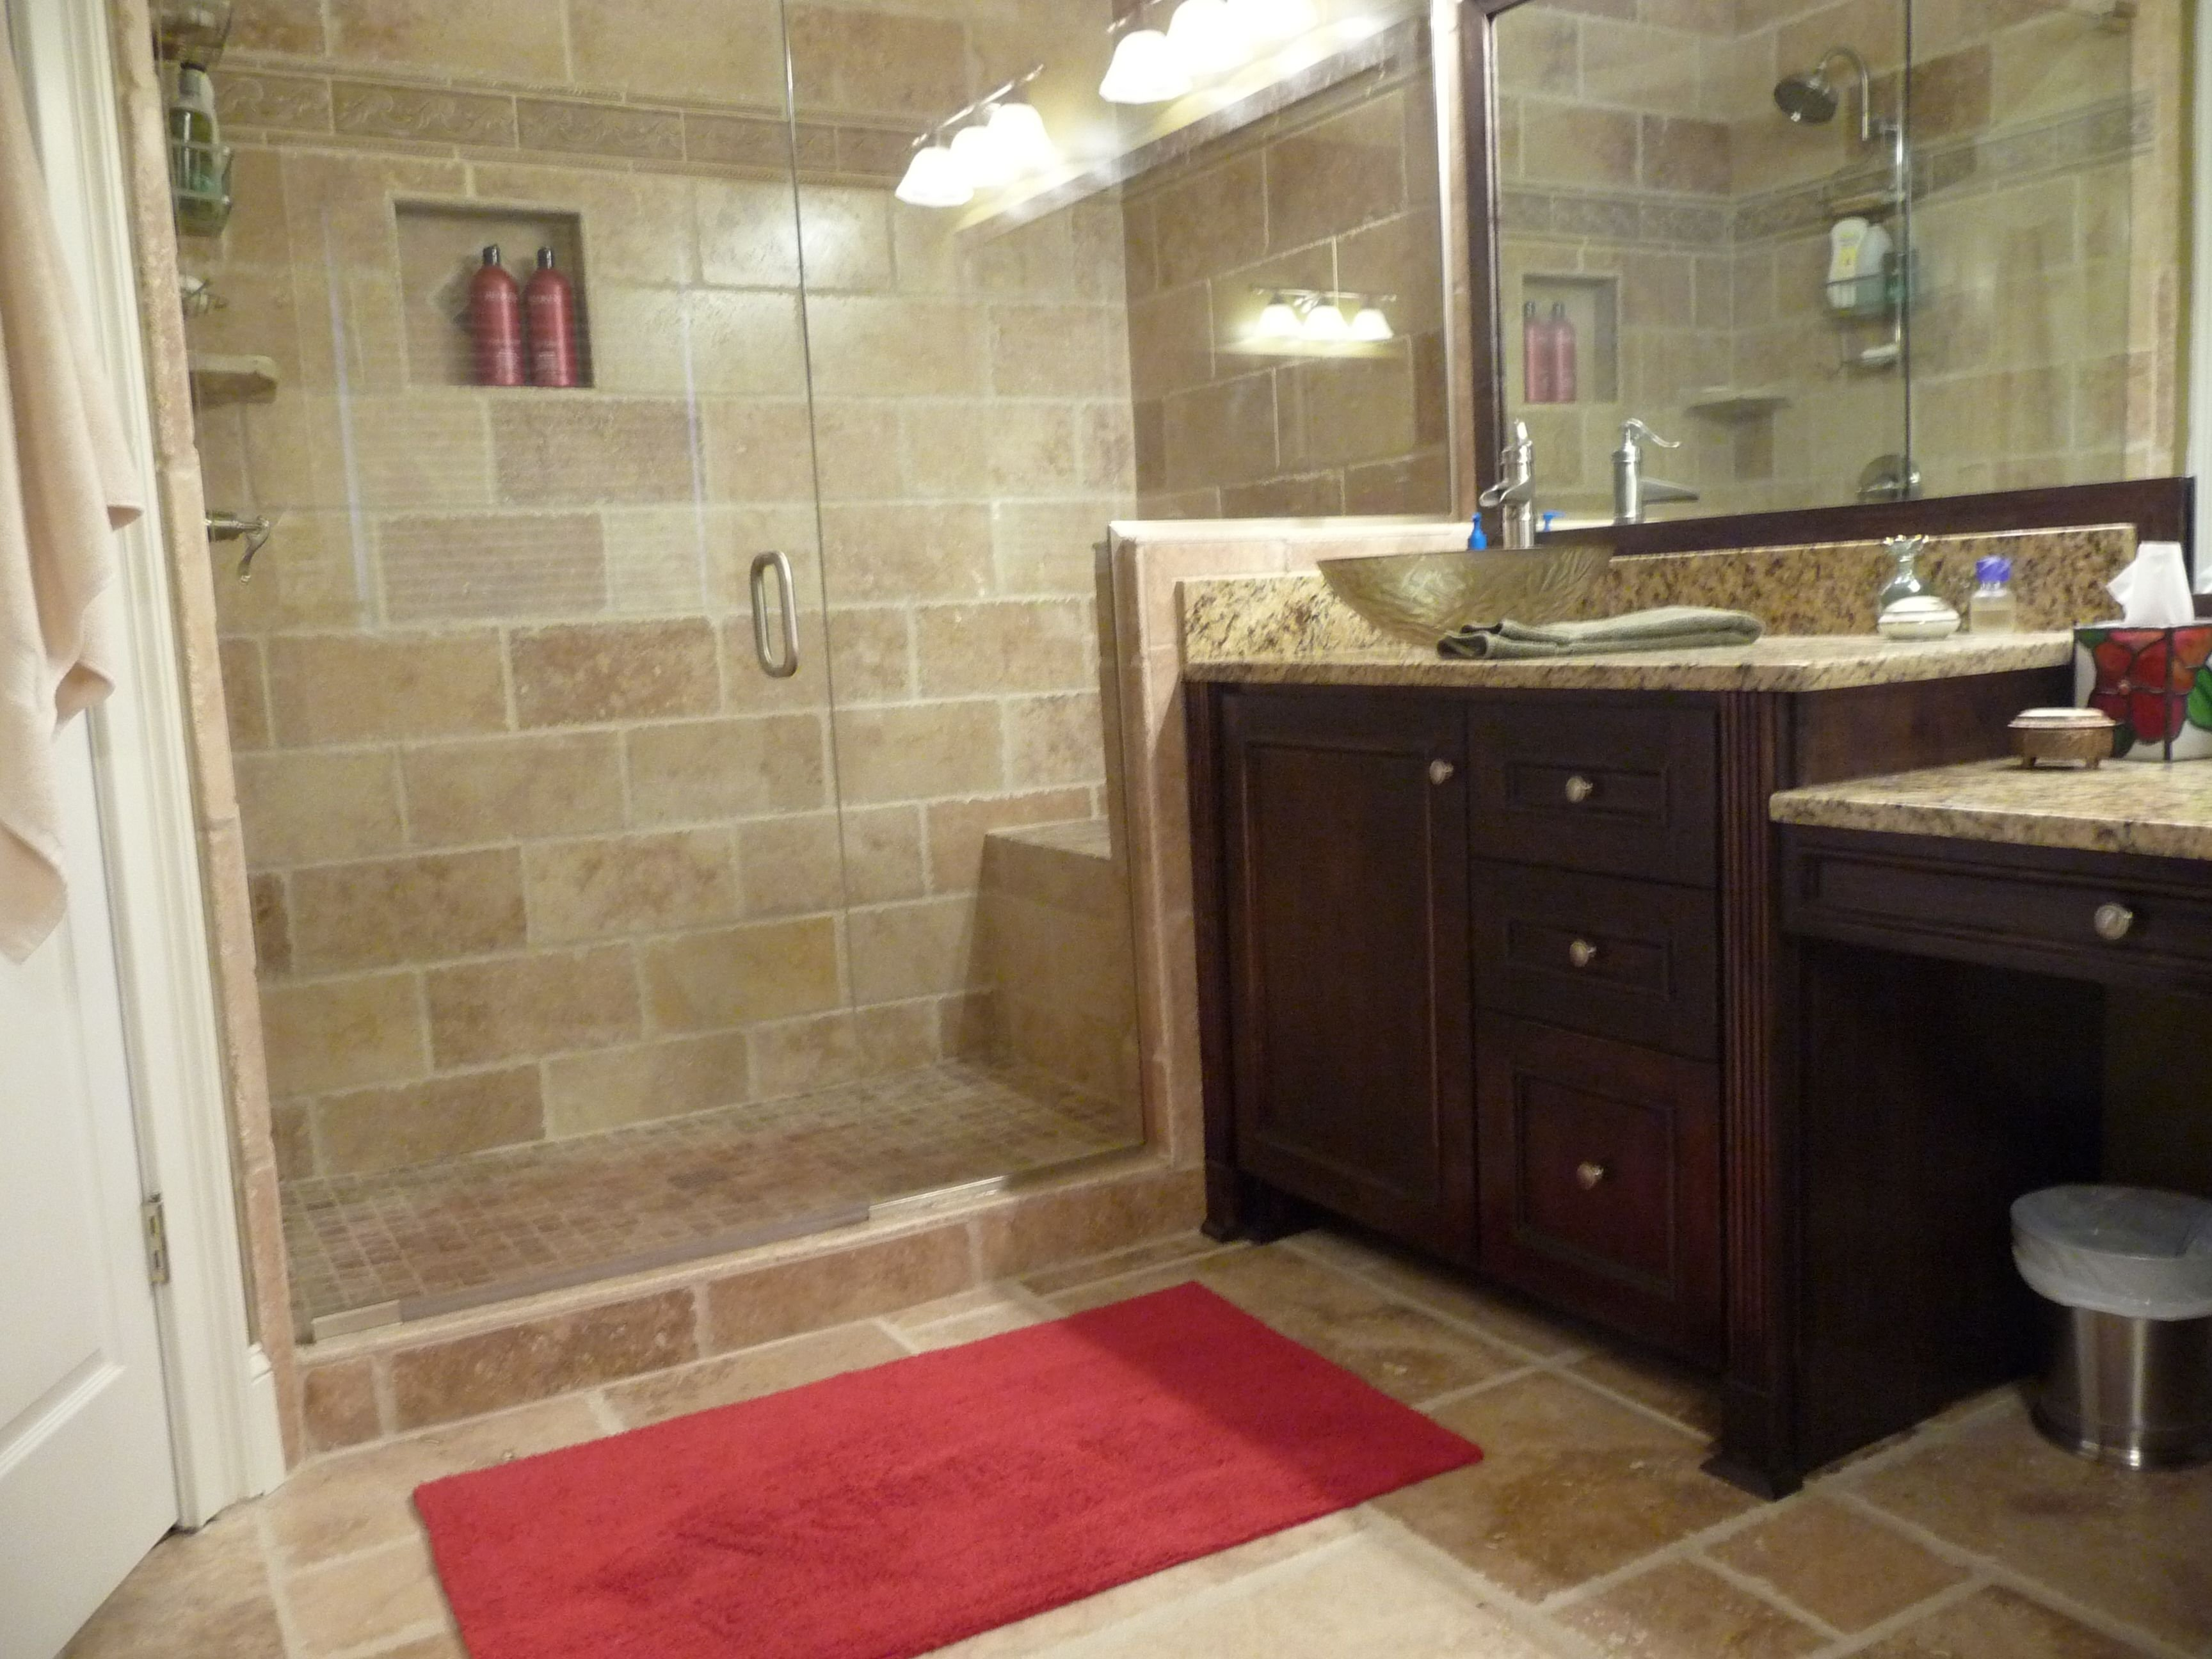 10 Nice Remodeling Bathroom Ideas For Small Bathrooms 66 most exceptional bathroom remodeling ideas for small bathrooms 2020